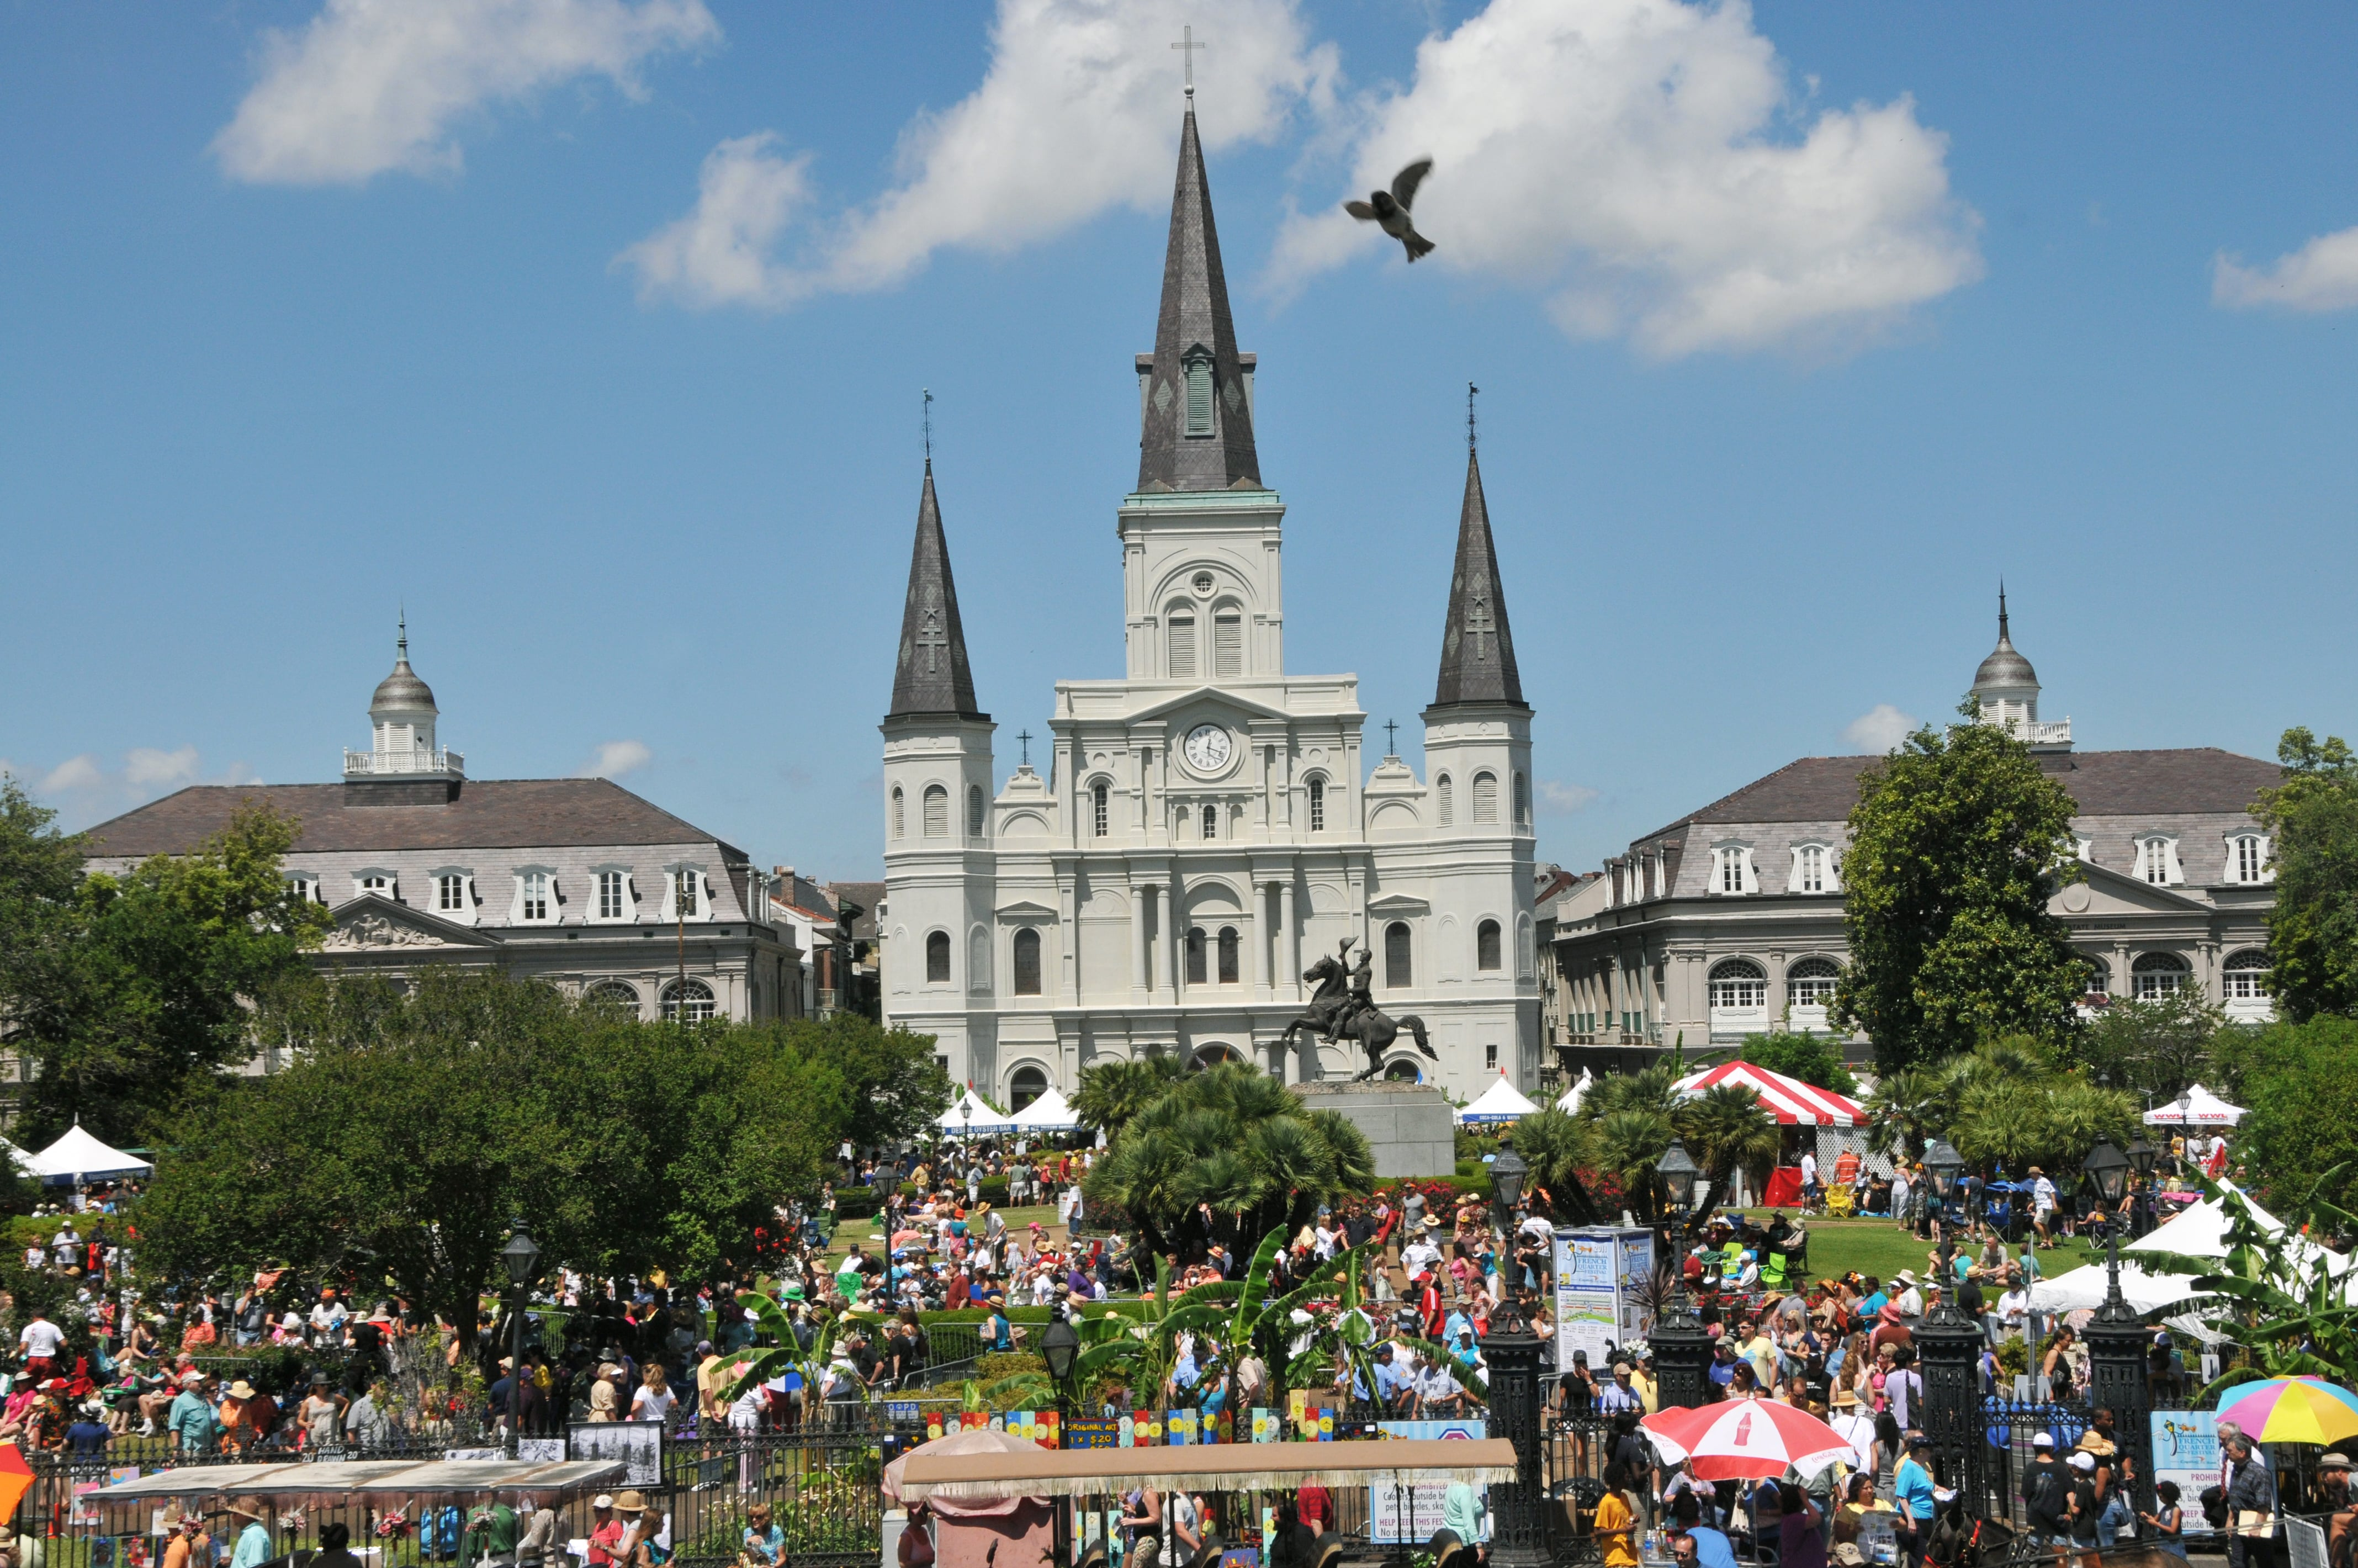 An image of Jackson Square in New Orleans, LA